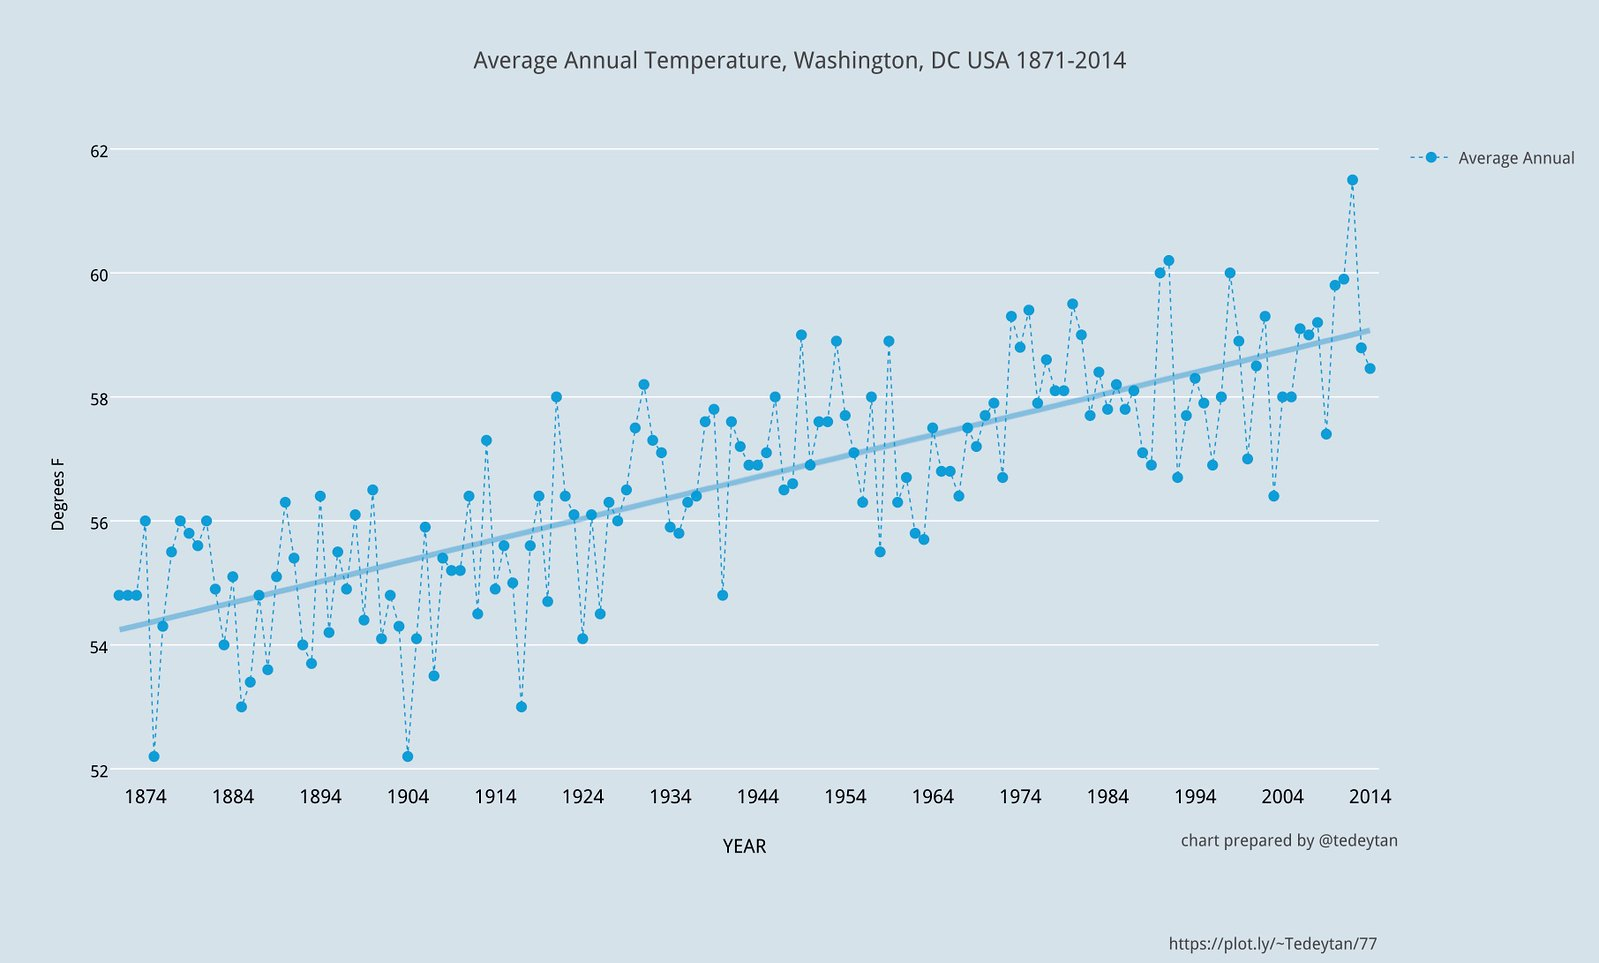 Changing Climate (chart), Washington, DC USA 1871-2014